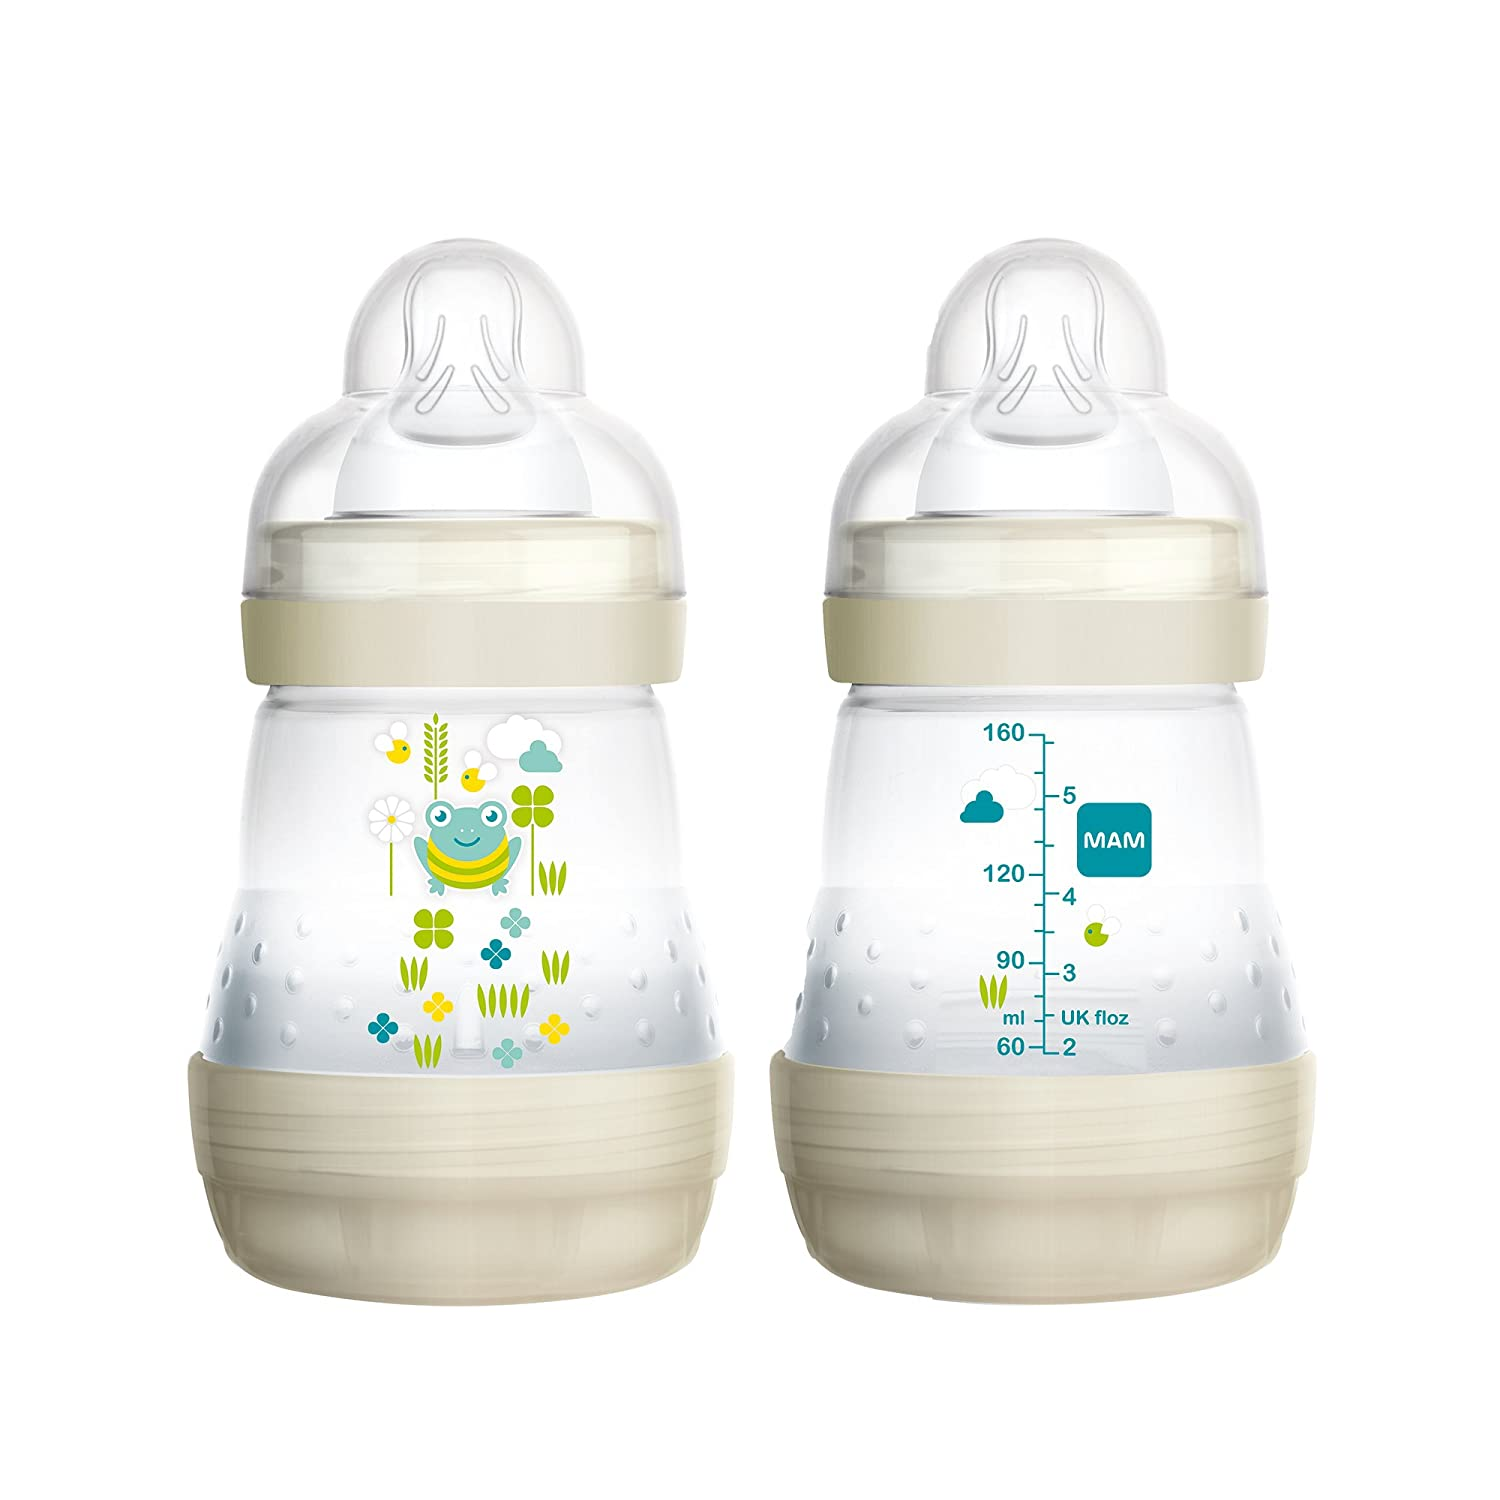 MAM Baby Bottles for Breastfed Babies, MAM Baby Bottles Anti Colic, White, 5 Ounces, 2-Count 5192-006-3-1